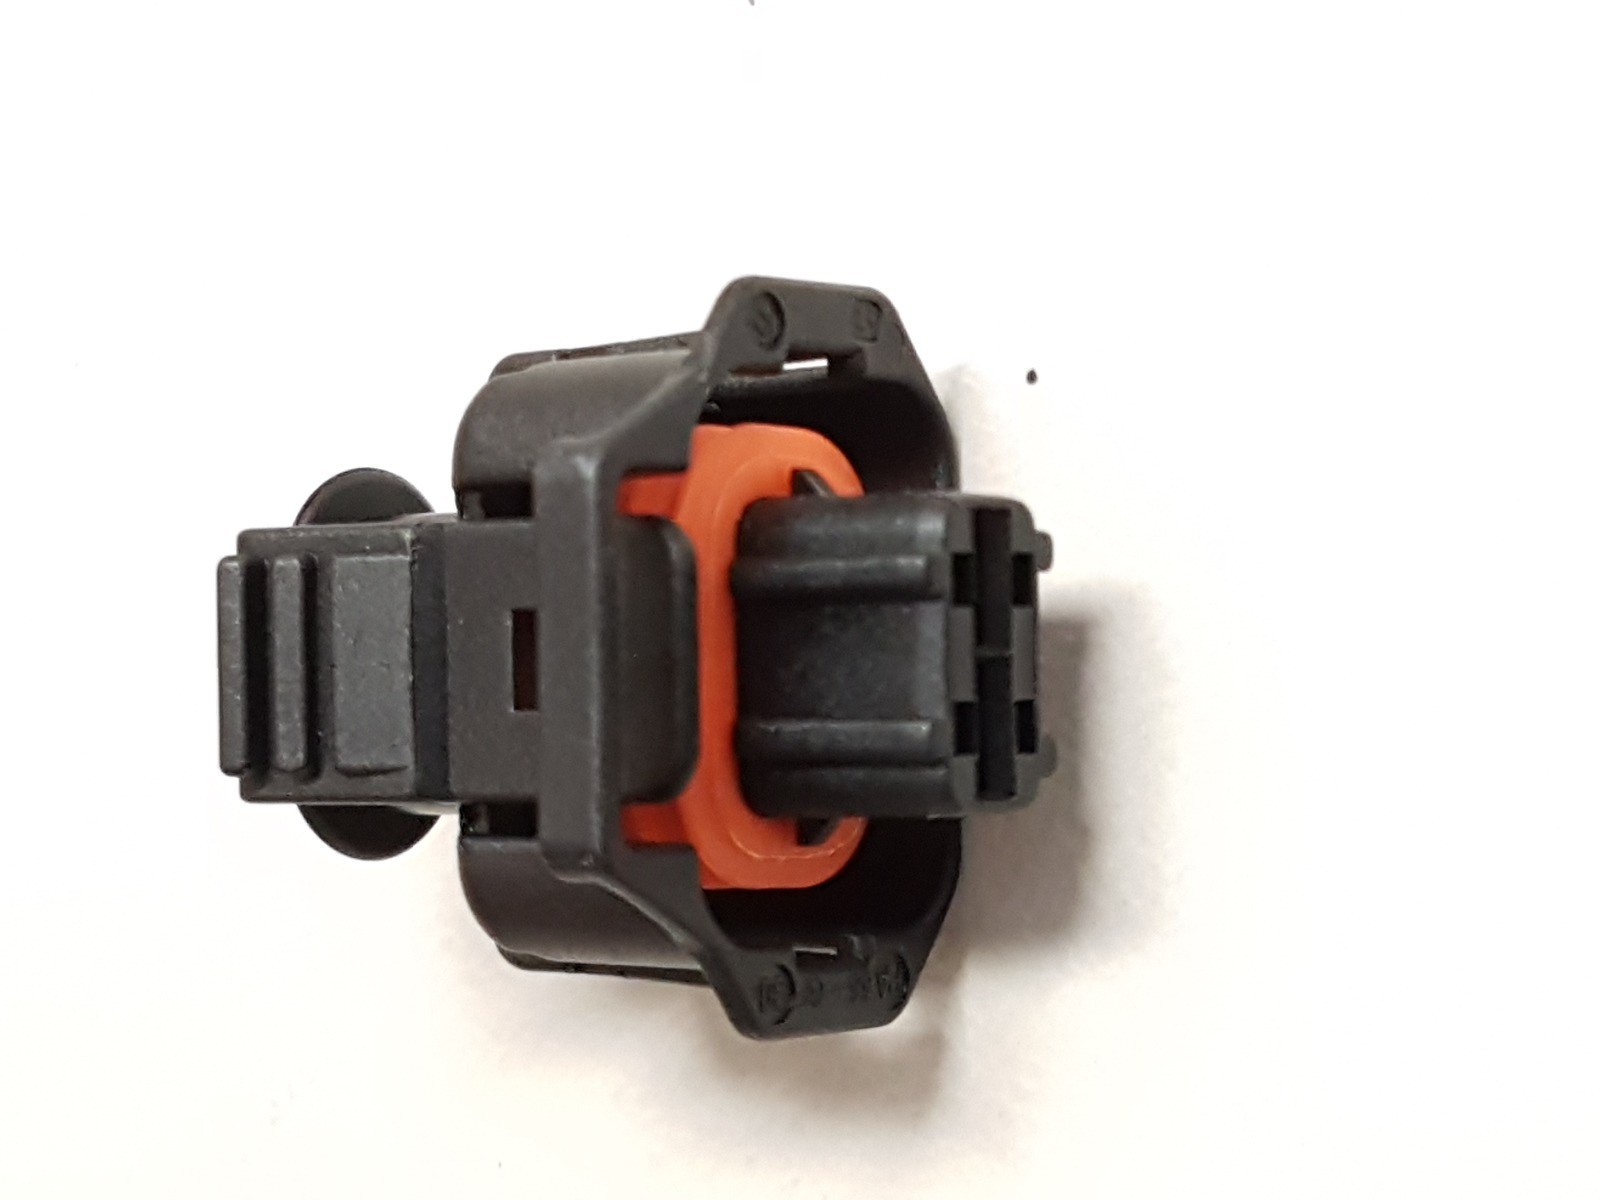 Connectors for diesel electric systems